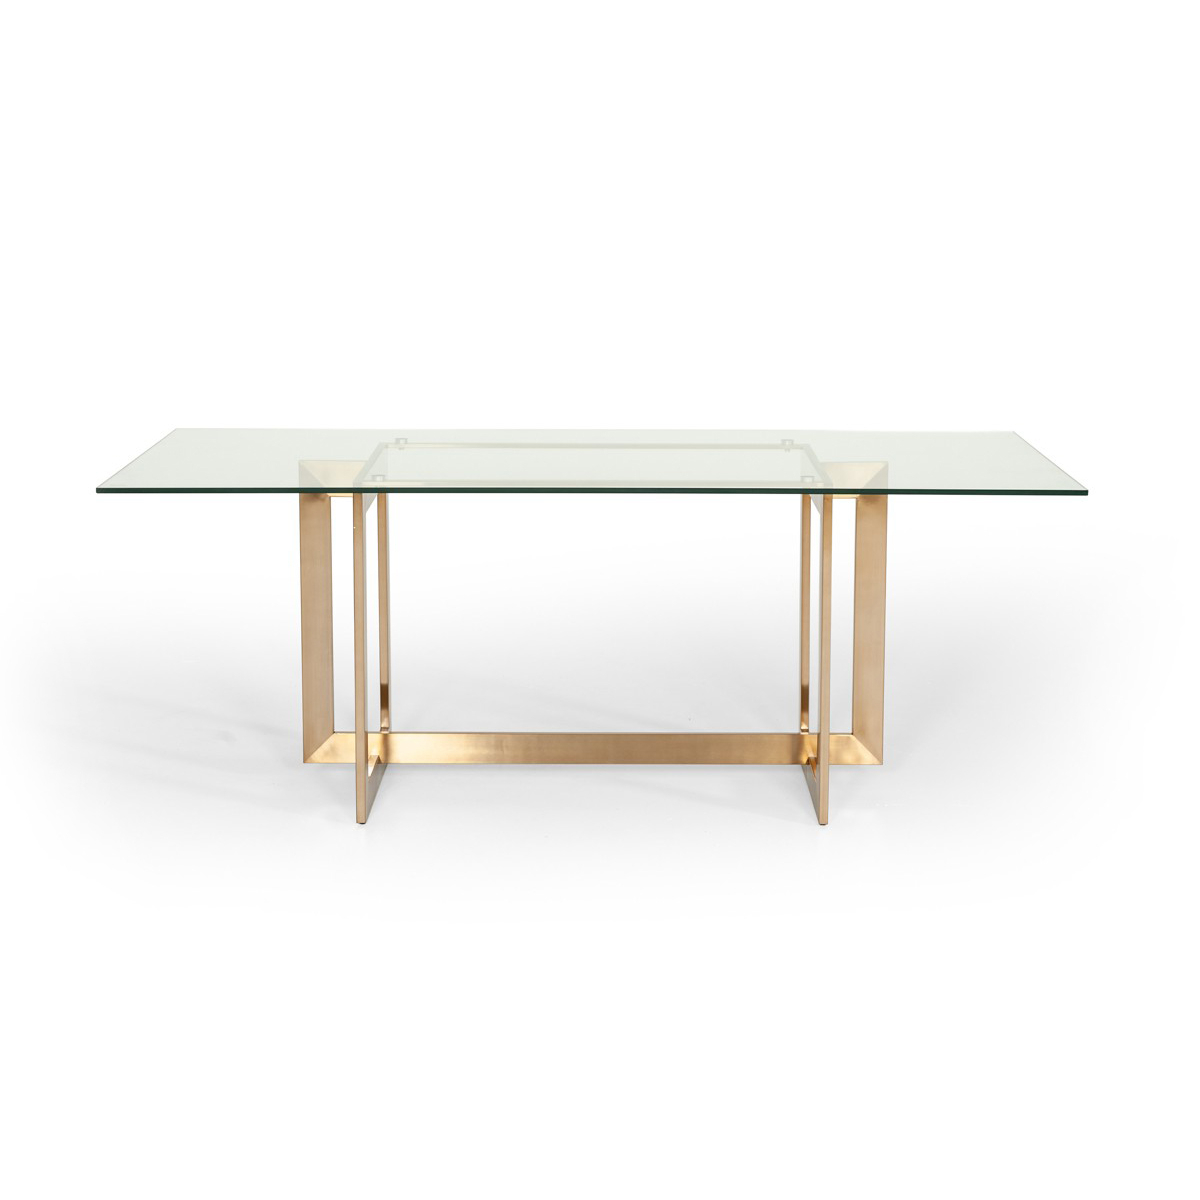 Event Trade Show Furniture Rental with regard to 2020 Dining Tables With Brushed Gold Stainless Finish